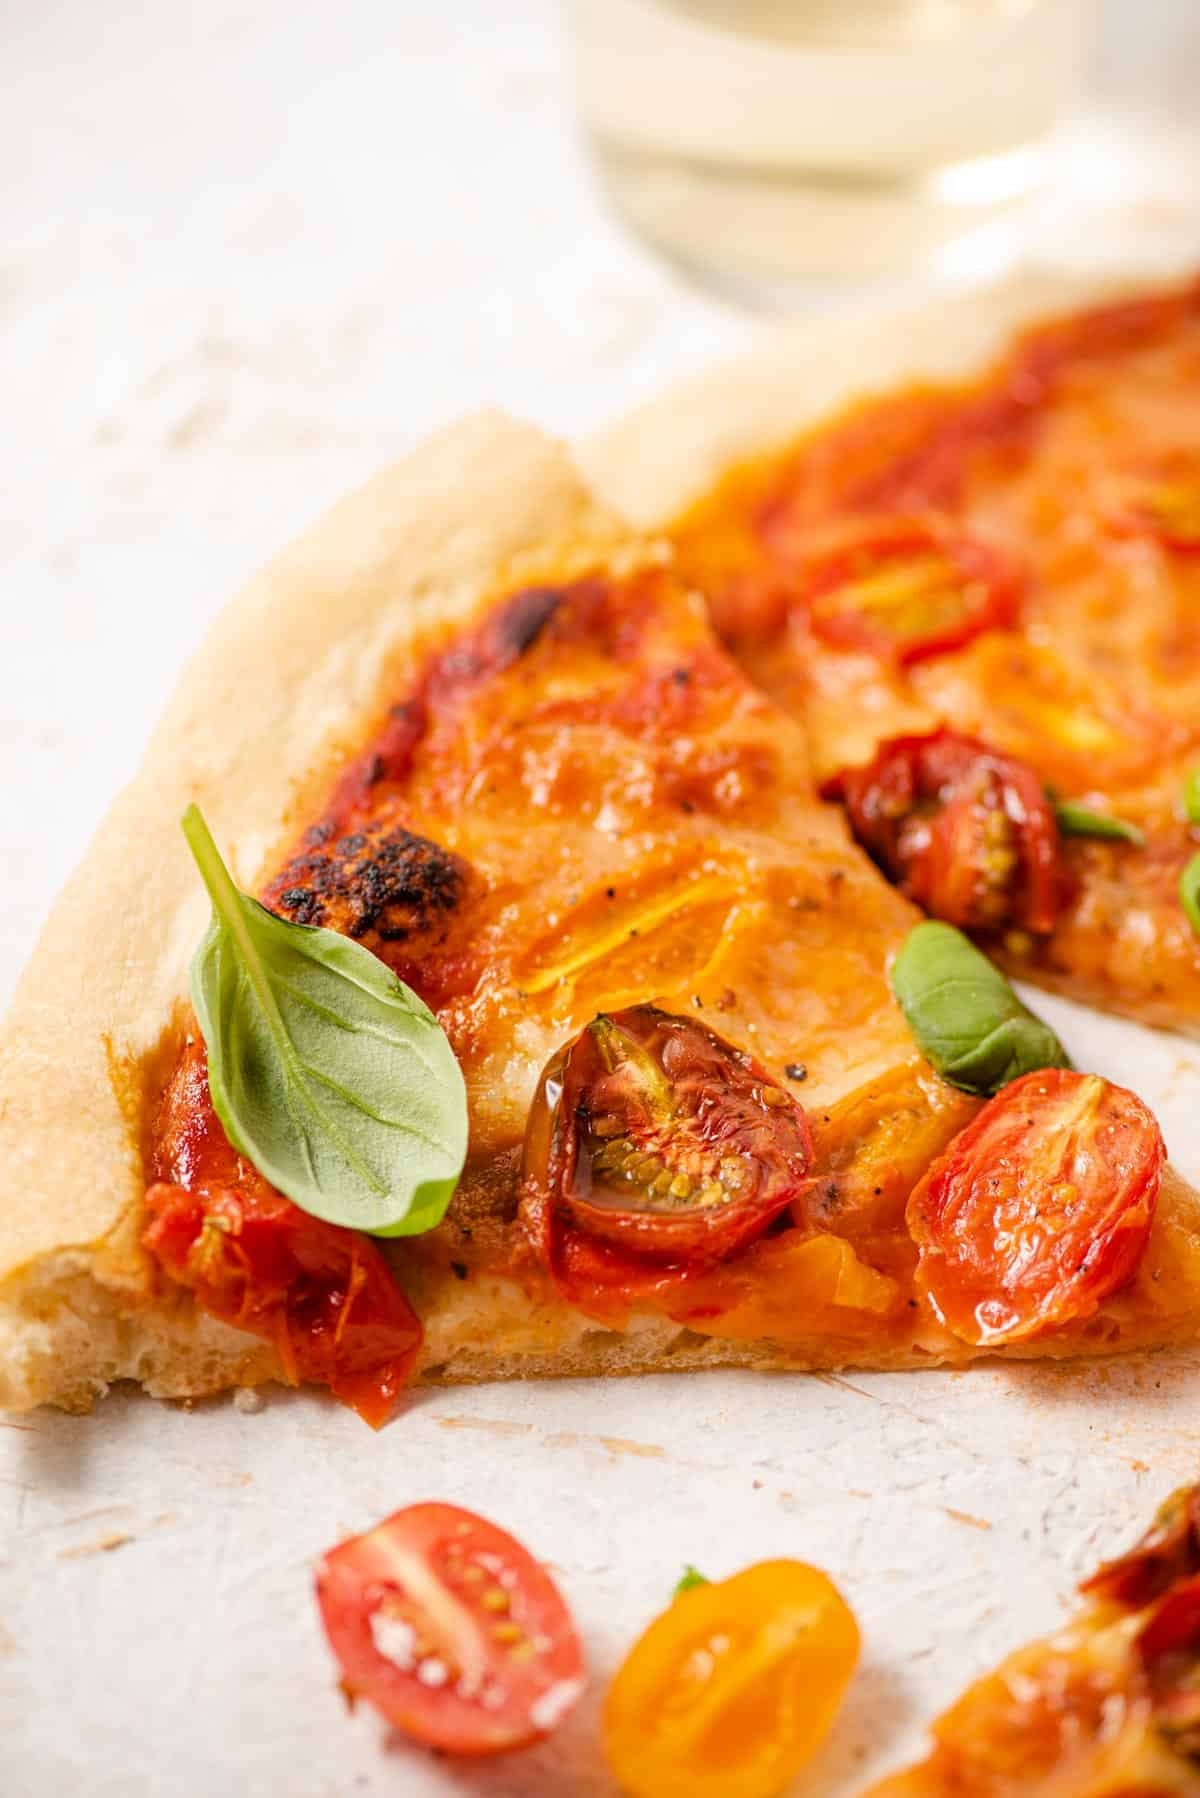 A close up of one slice of tomato pizza topped with fresh basil